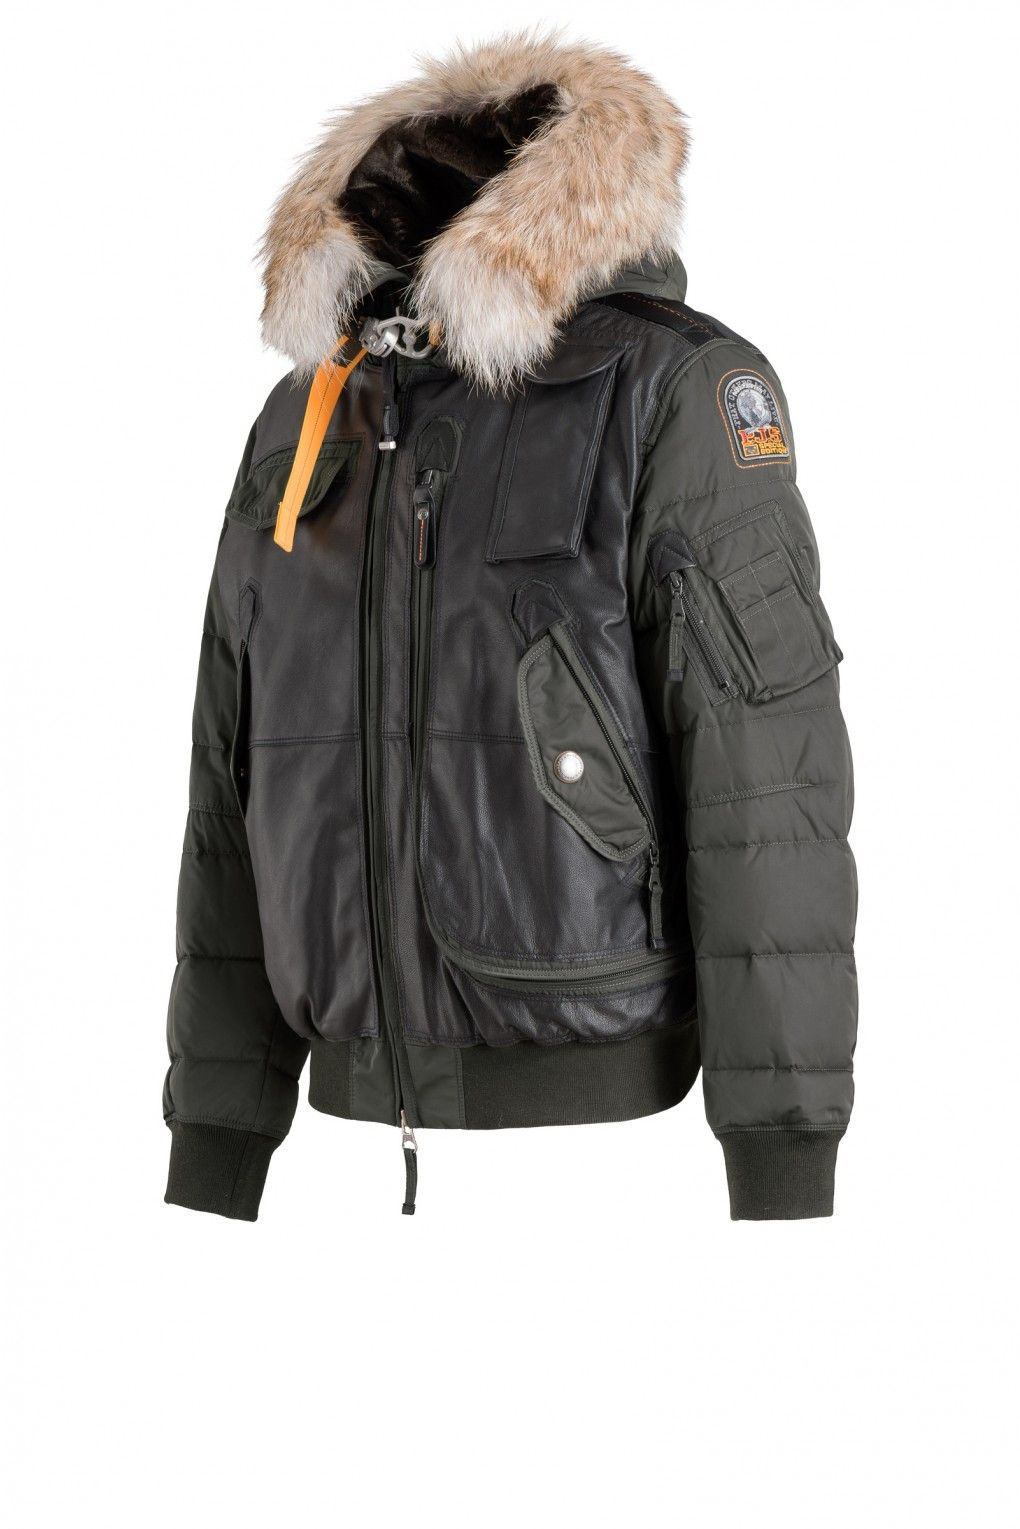 248055b47 GRIZZLY - jackets - MAN | Parajumpers | OUTERWEAR | Jackets ...